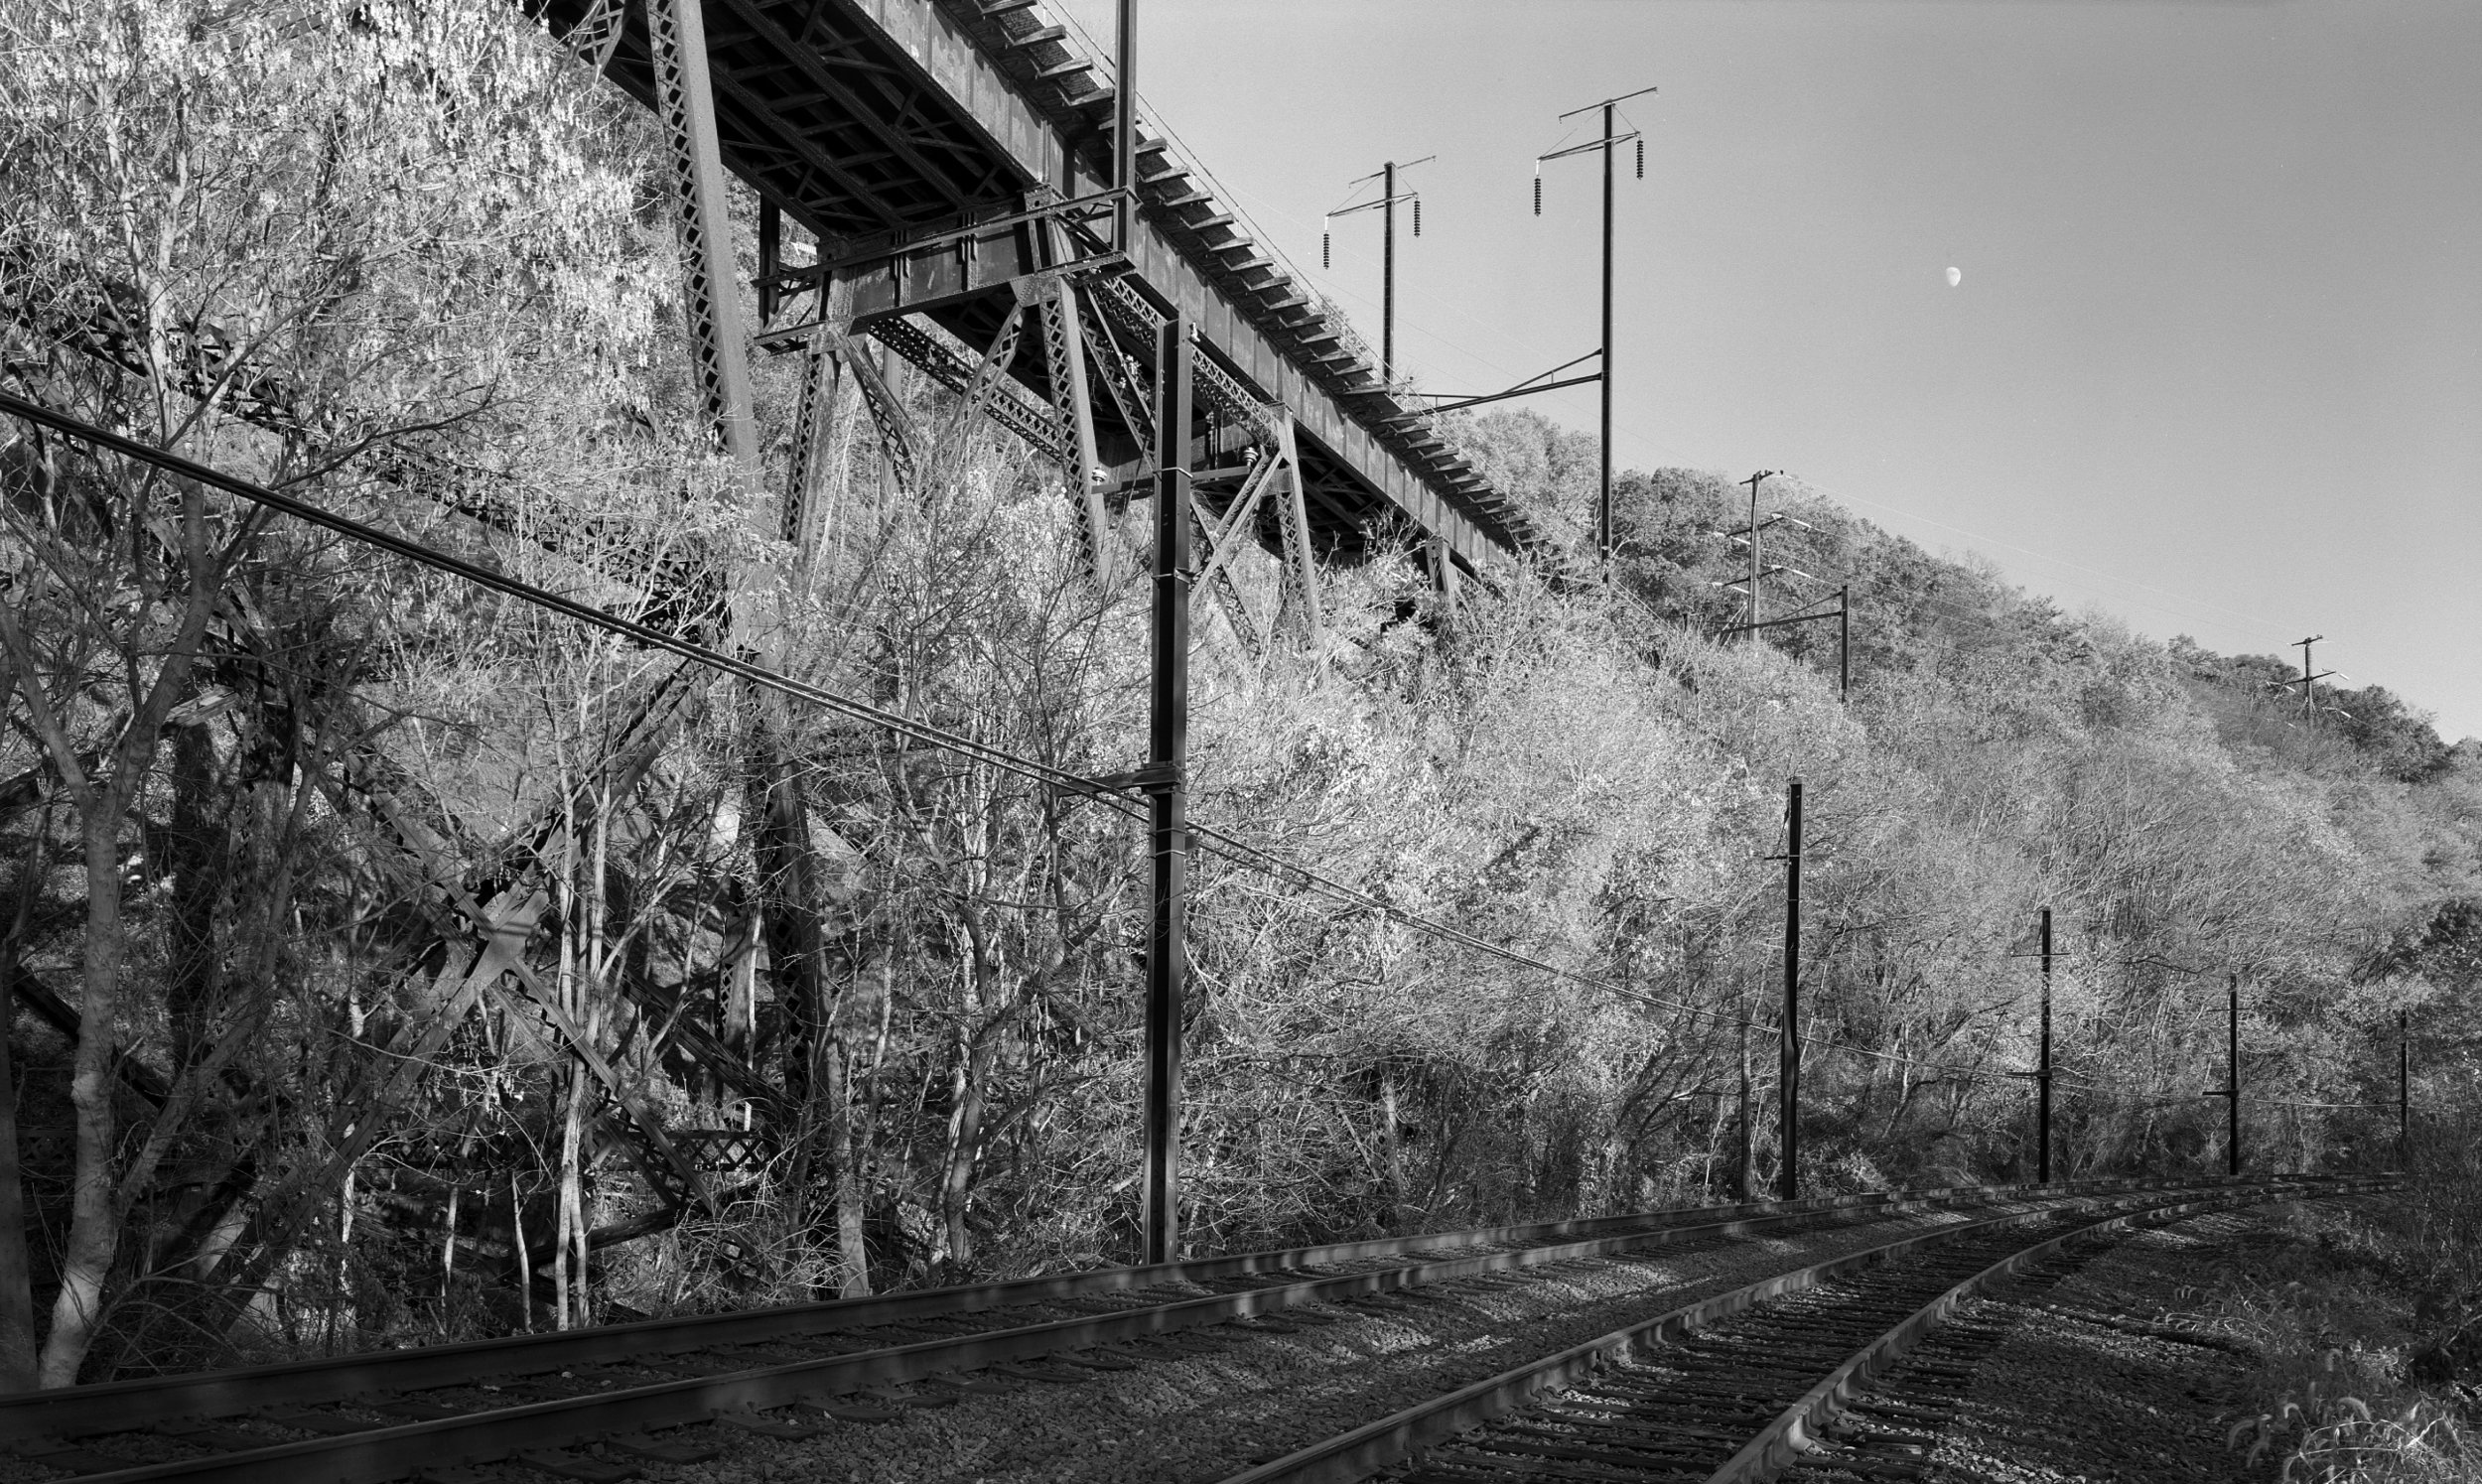 The massive Safe Harbor Bridge was just west of the temporary block station named Fire which was put into service in 1959. The block station and crossovers were located on the A&S Branch up on the embankment pictured here in the top right of the image, the Columbia & Port Deposit Branch is the line in the foreground.